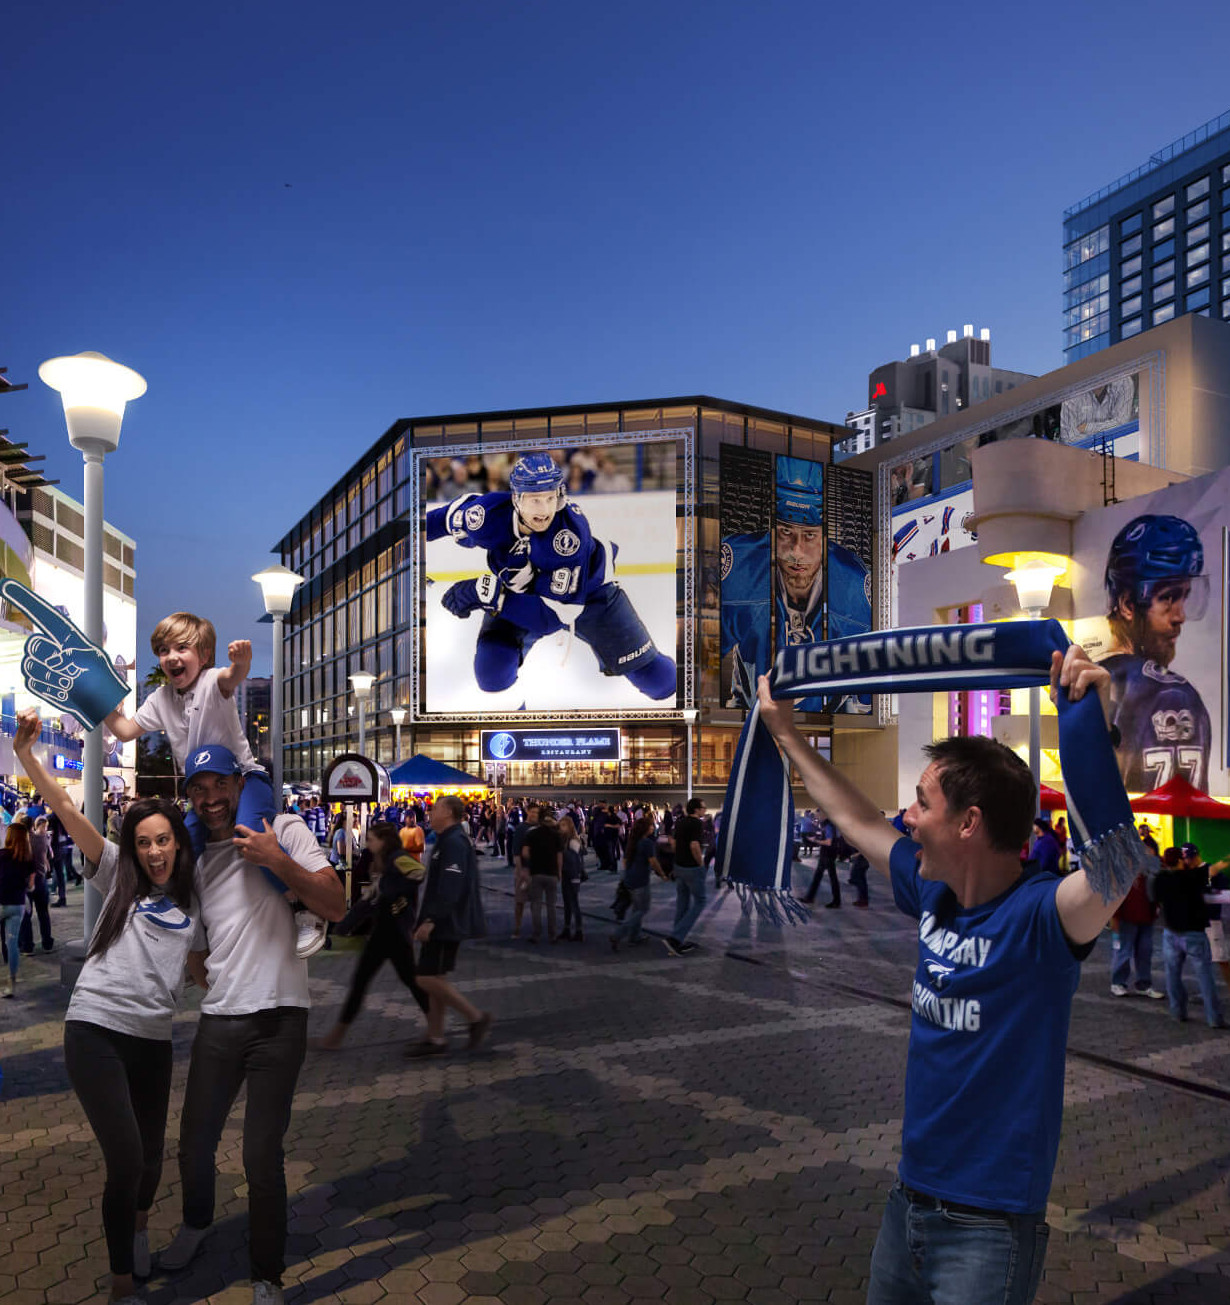 rendering of people in a town square celebrating the Tampa Bay Lightning hockey team